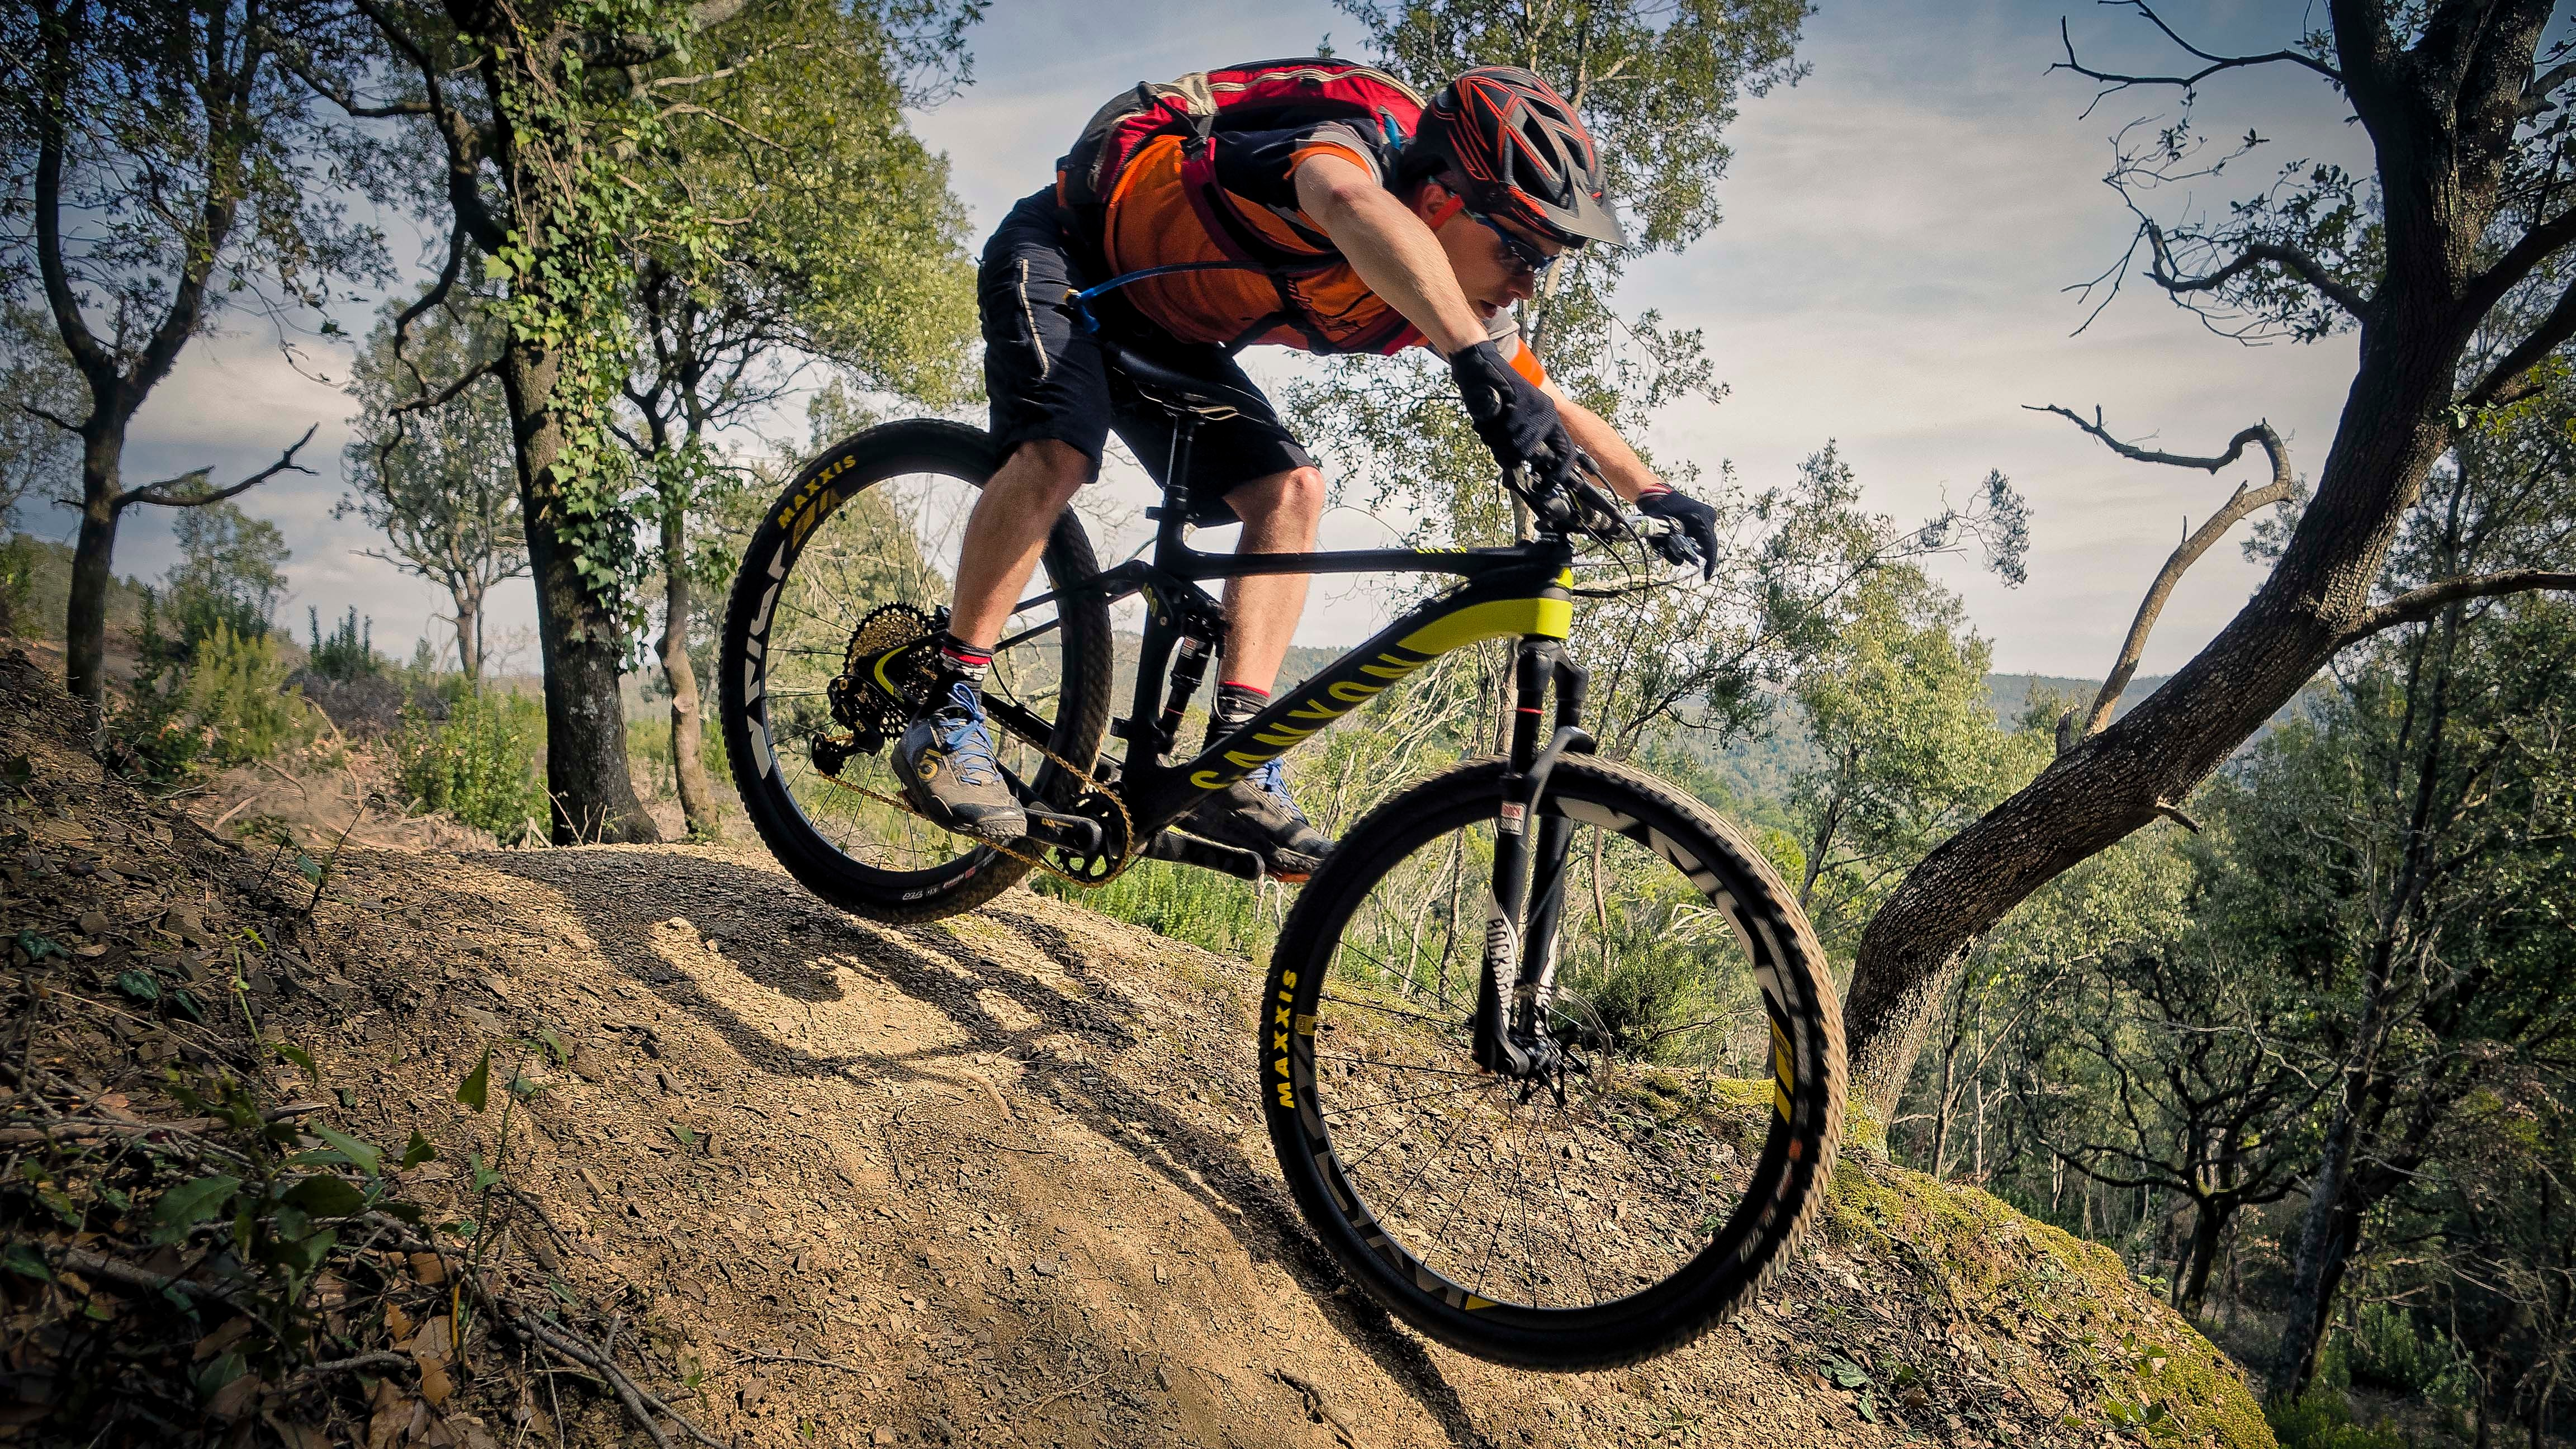 RockShox ramps up the cross-country aggression with all-new